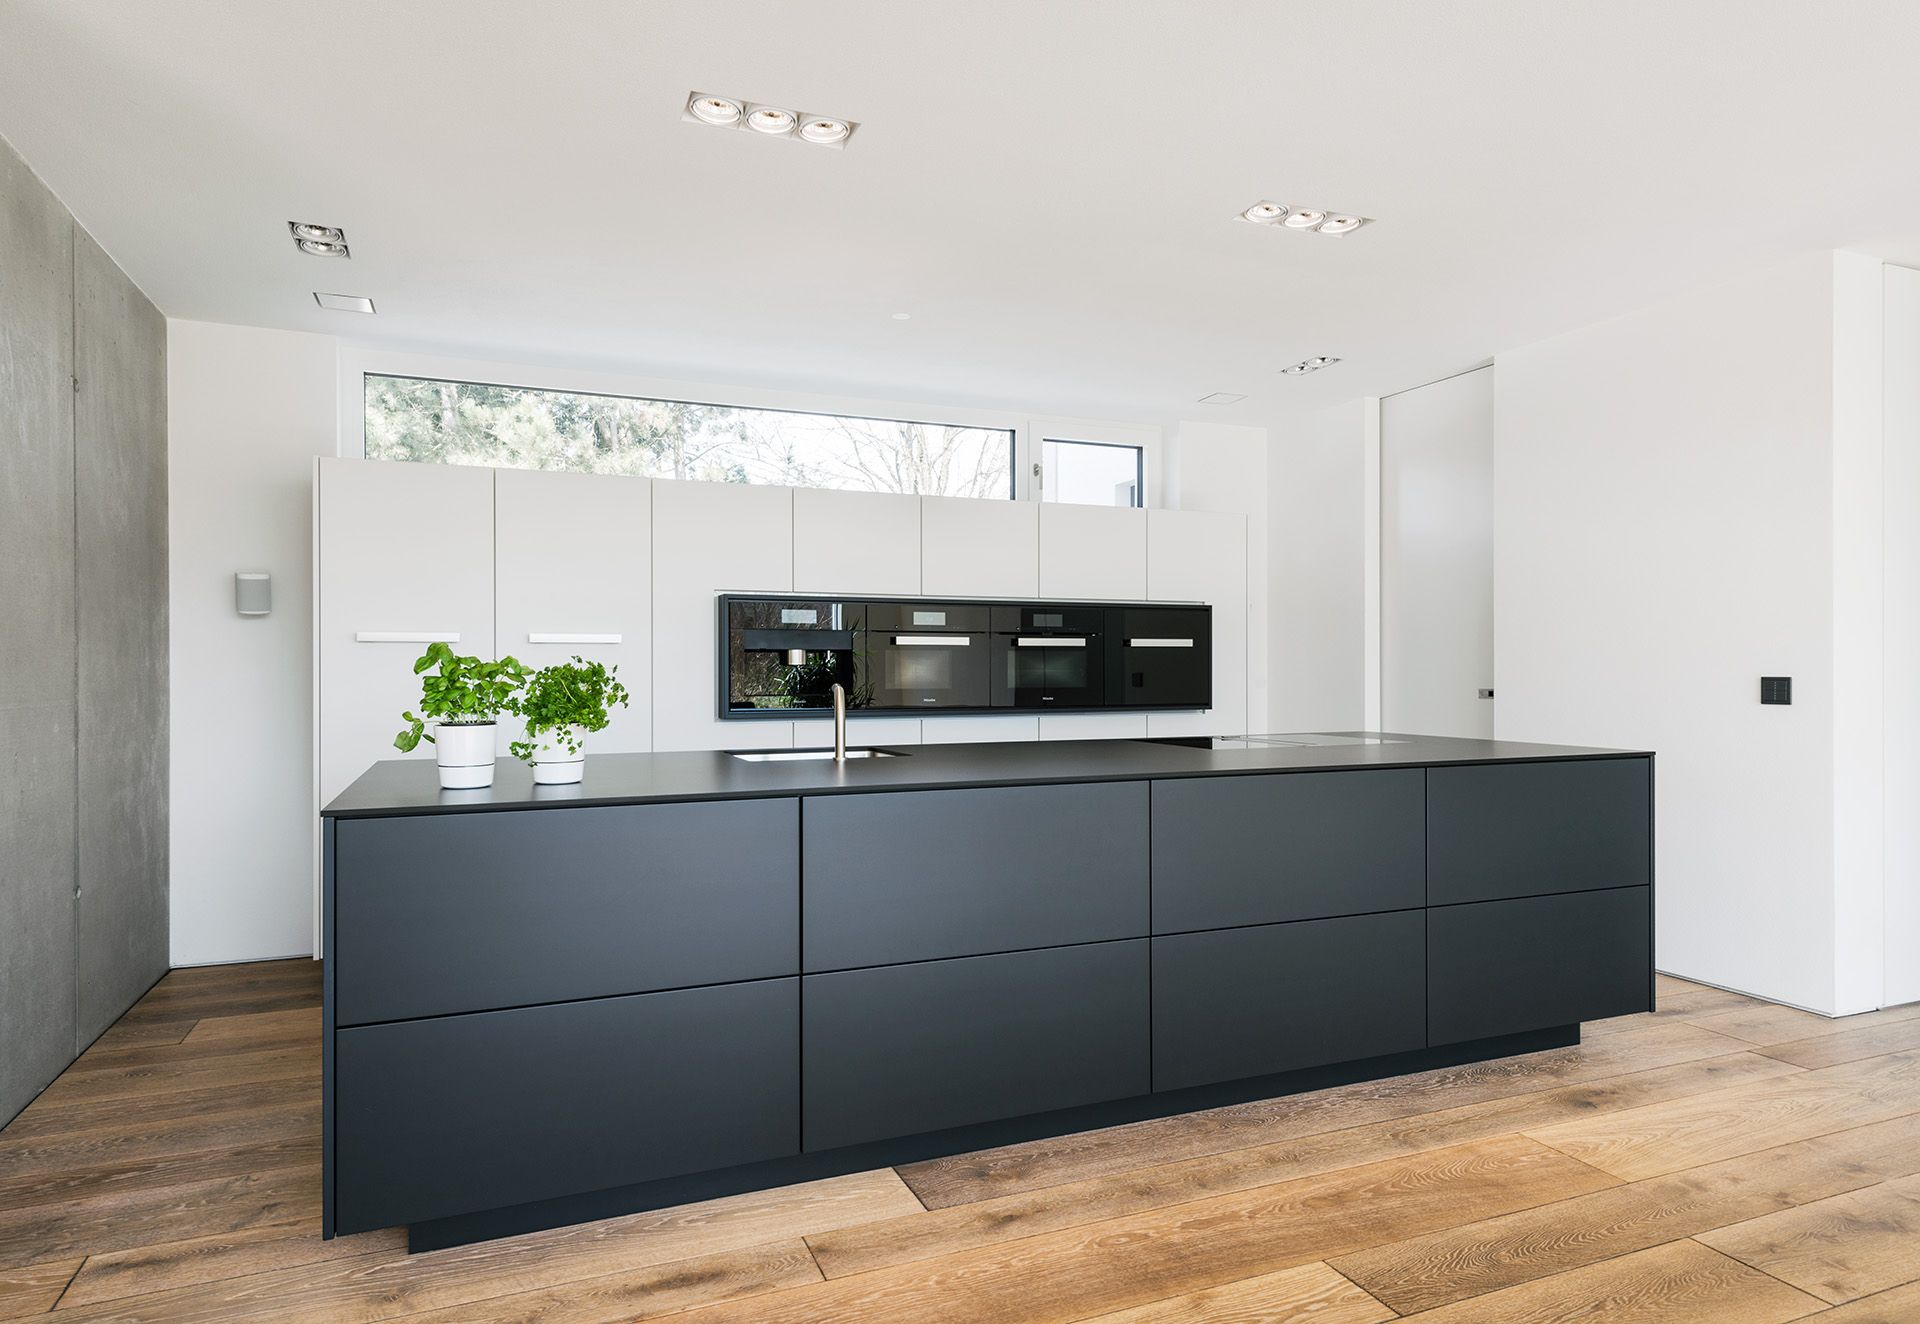 Küche SchwarzWeiß  kitchens  Pinterest  Kitchens Haus and